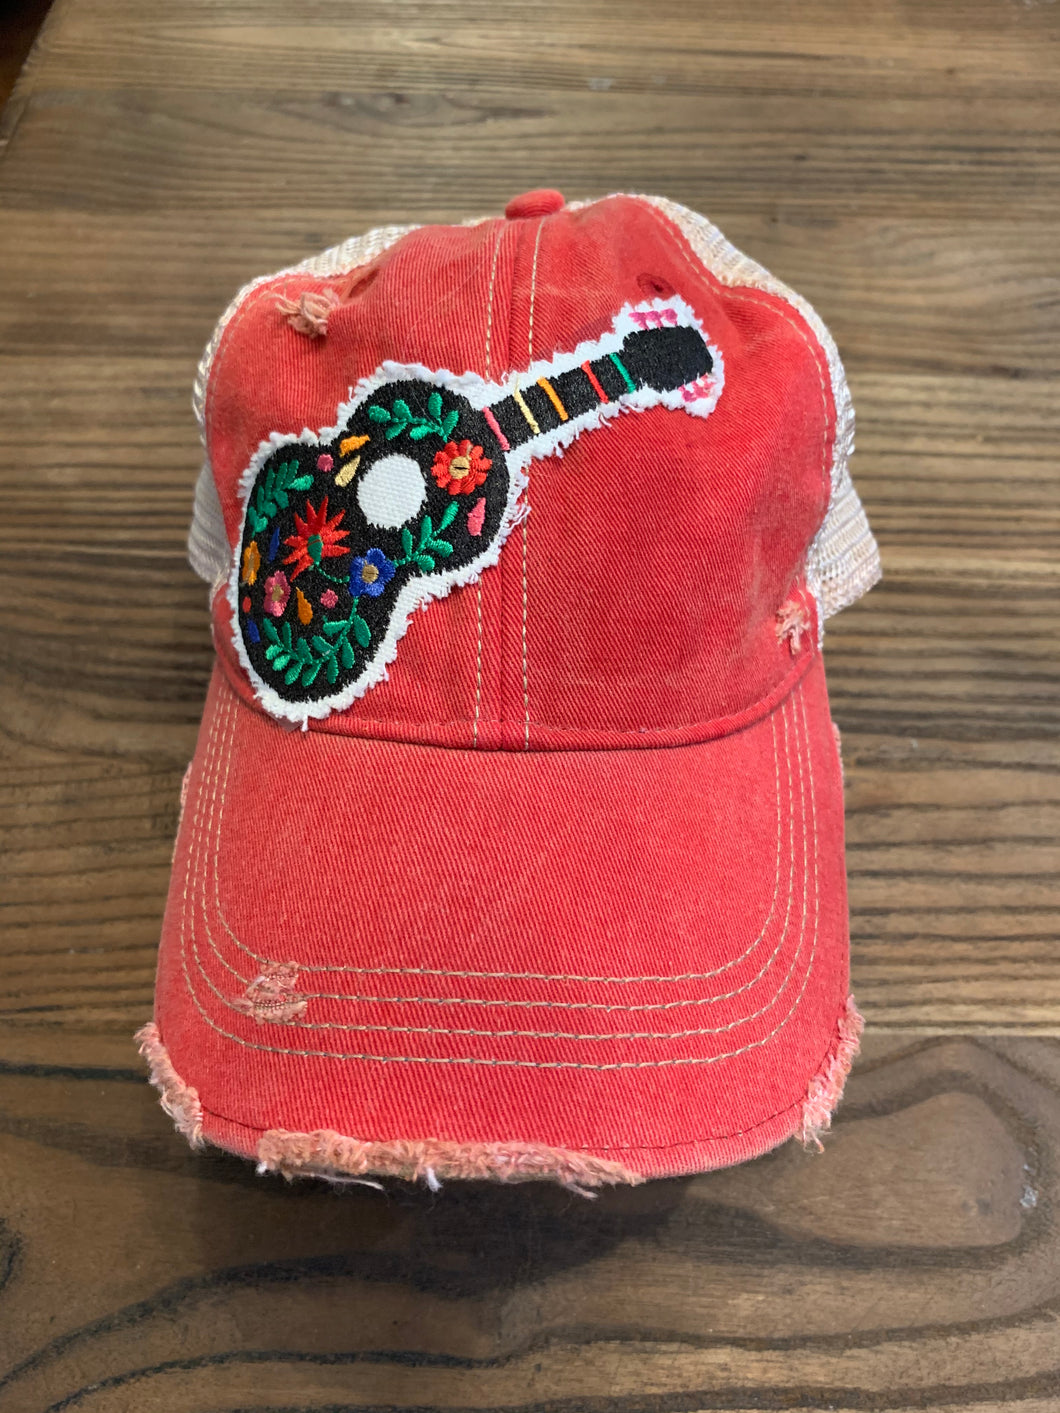 Floral guitar on vintage red hat